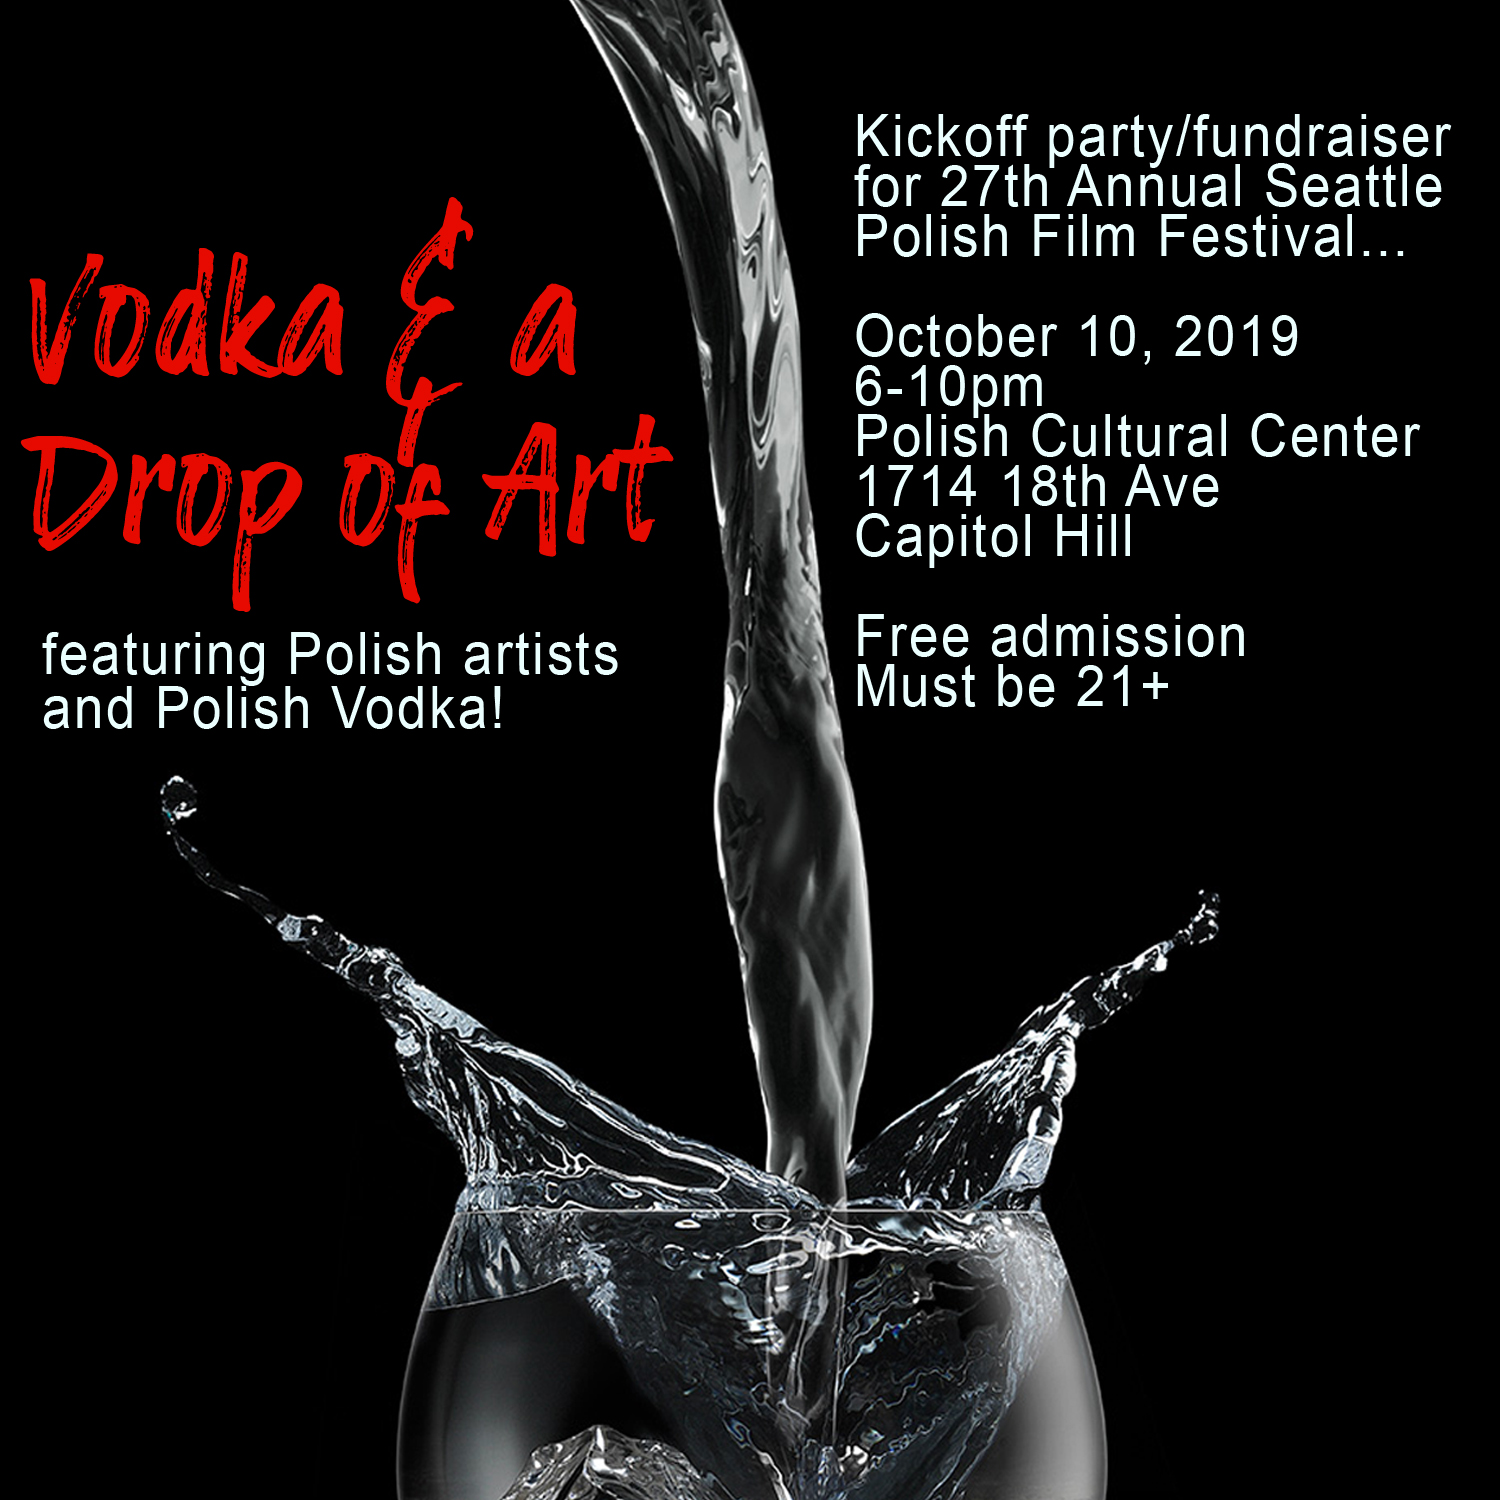 5th Annual Vodka Tasting to Kick Off the 27th Annual Seattle Polish Film Festival